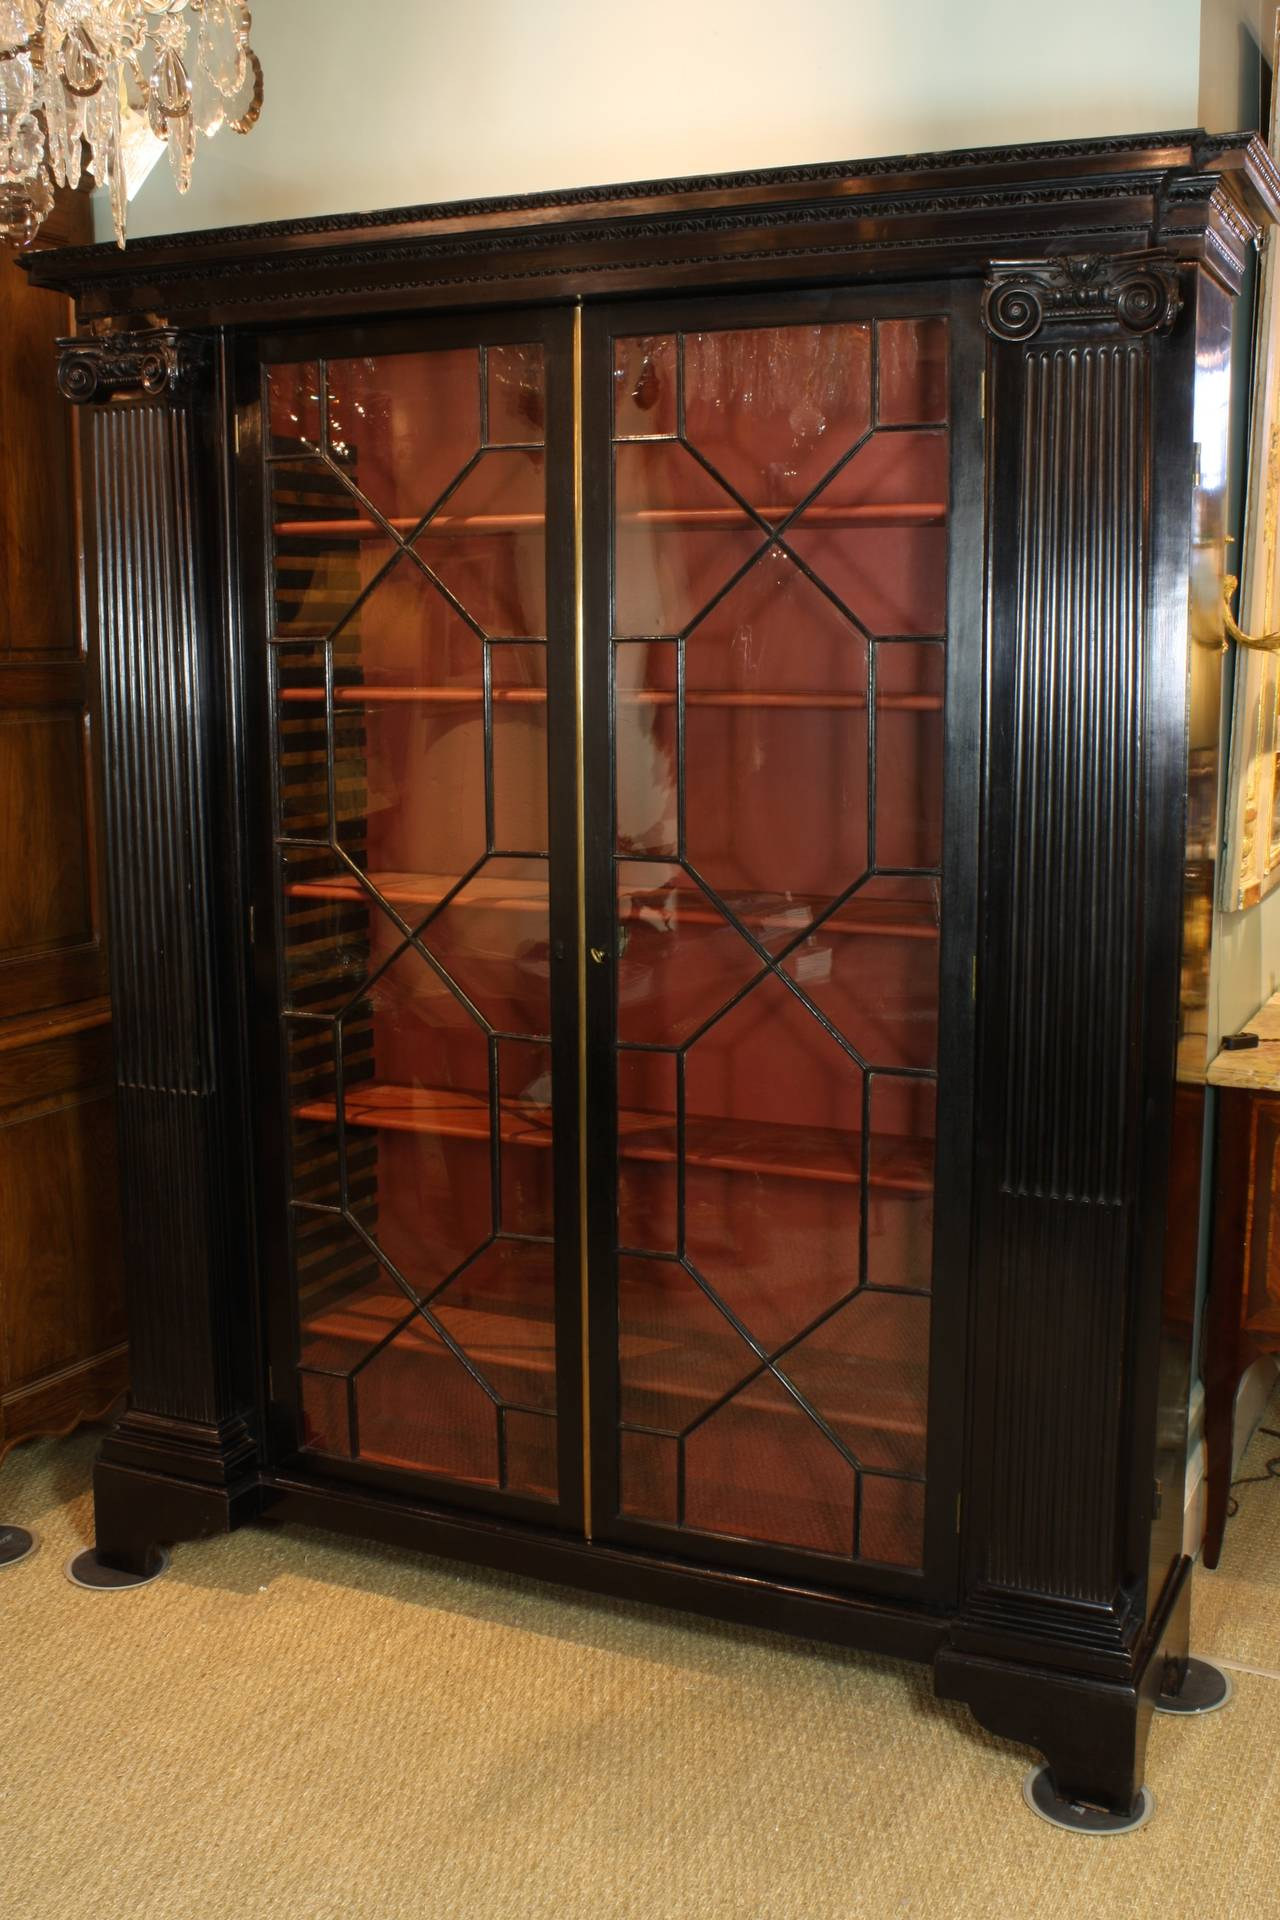 A rare English black-lacquered bookcase or credenza with astragal glazed front doors (late 19th century). Ionic pilasters with cabled fluting flank each side, and open to display secret inner shelves (the pilaster-ornamented doors also lock). Five